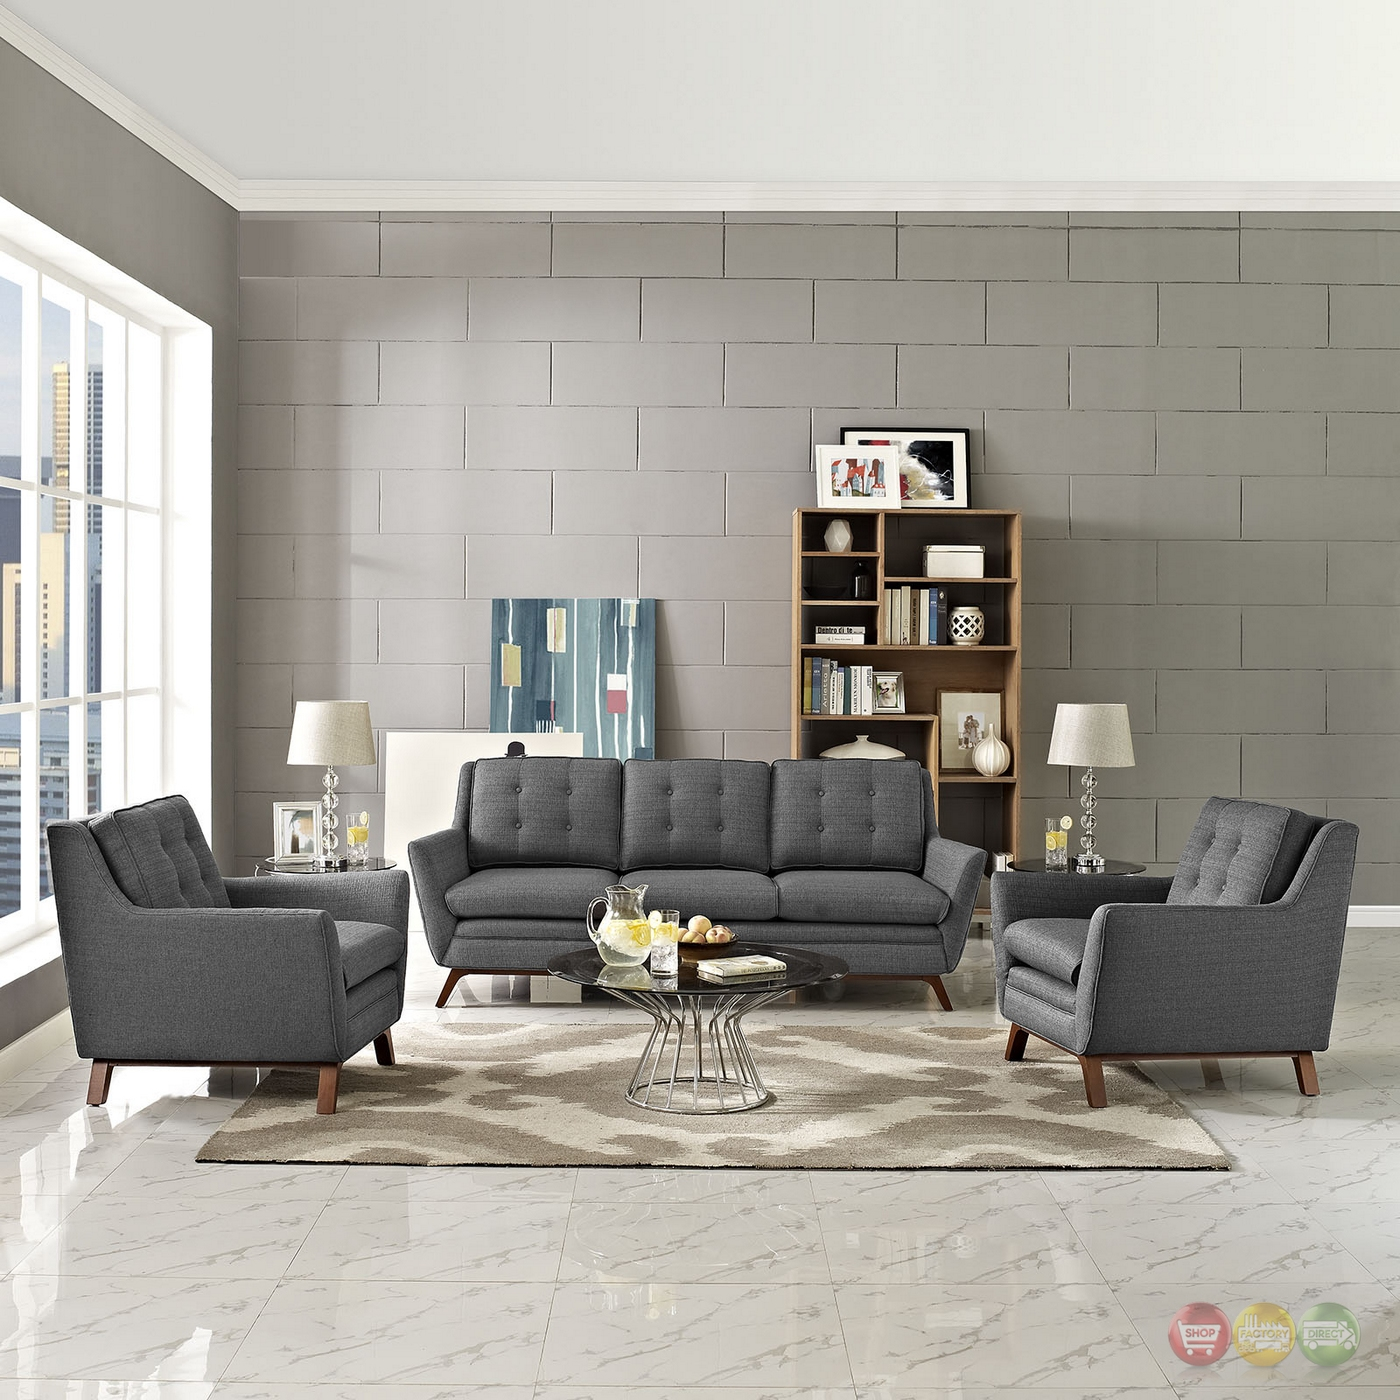 Beguile Contemporary 3pc Button Tufted Fabric Living Room Set Gray